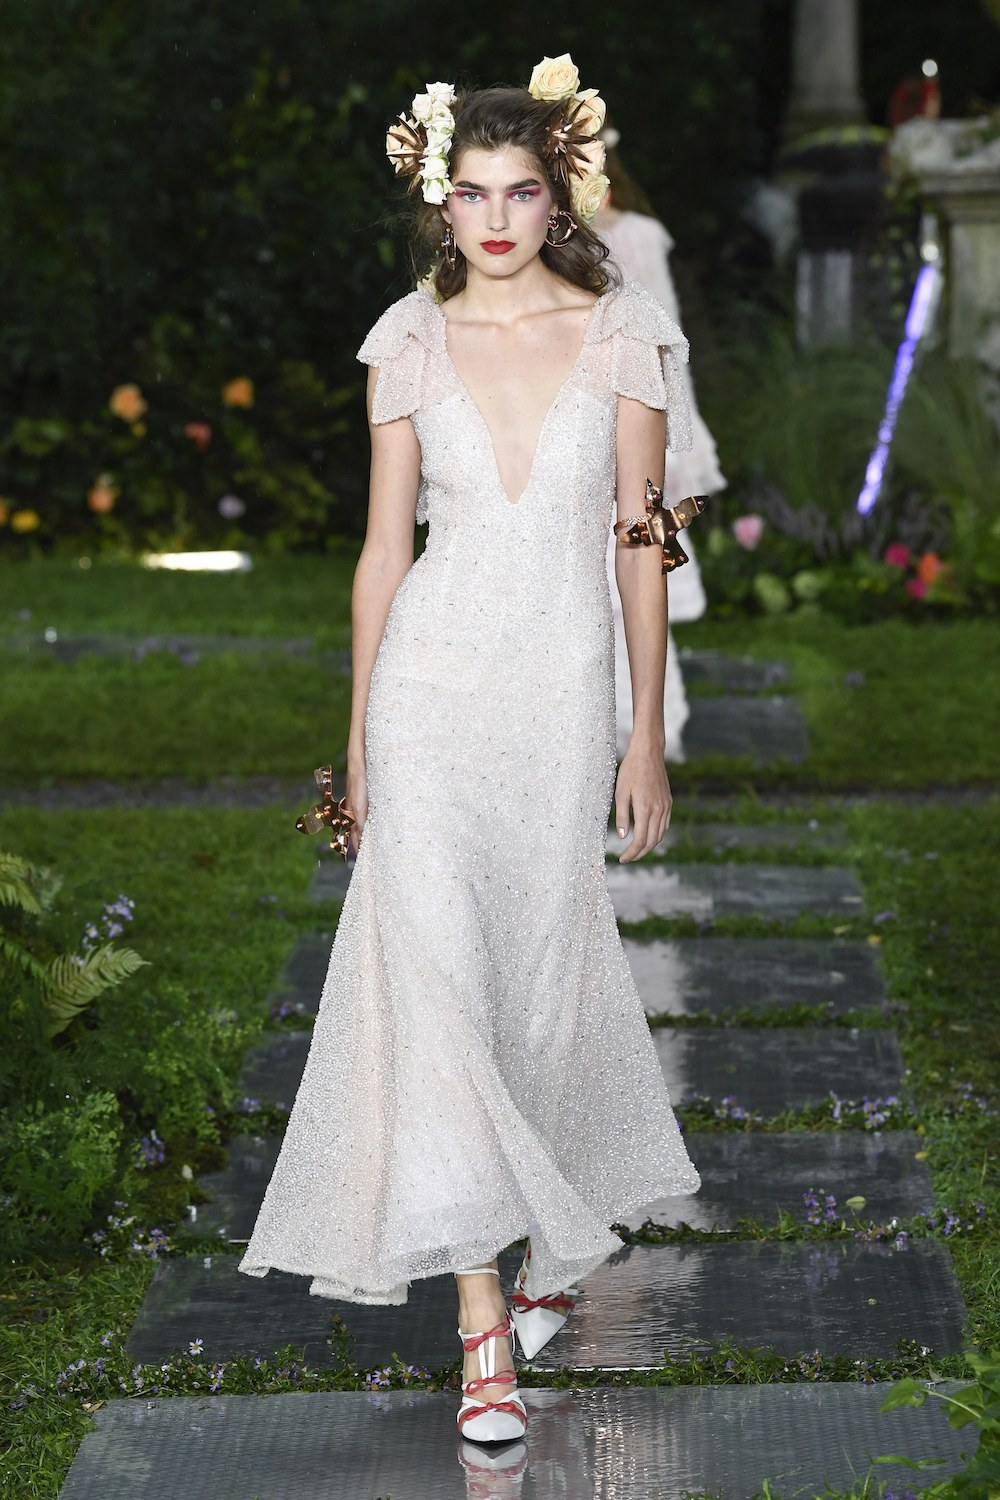 studio-ohlala-wedding-beauty-business-tips-blog-paris-wedding-dress-rodarte-.jpg